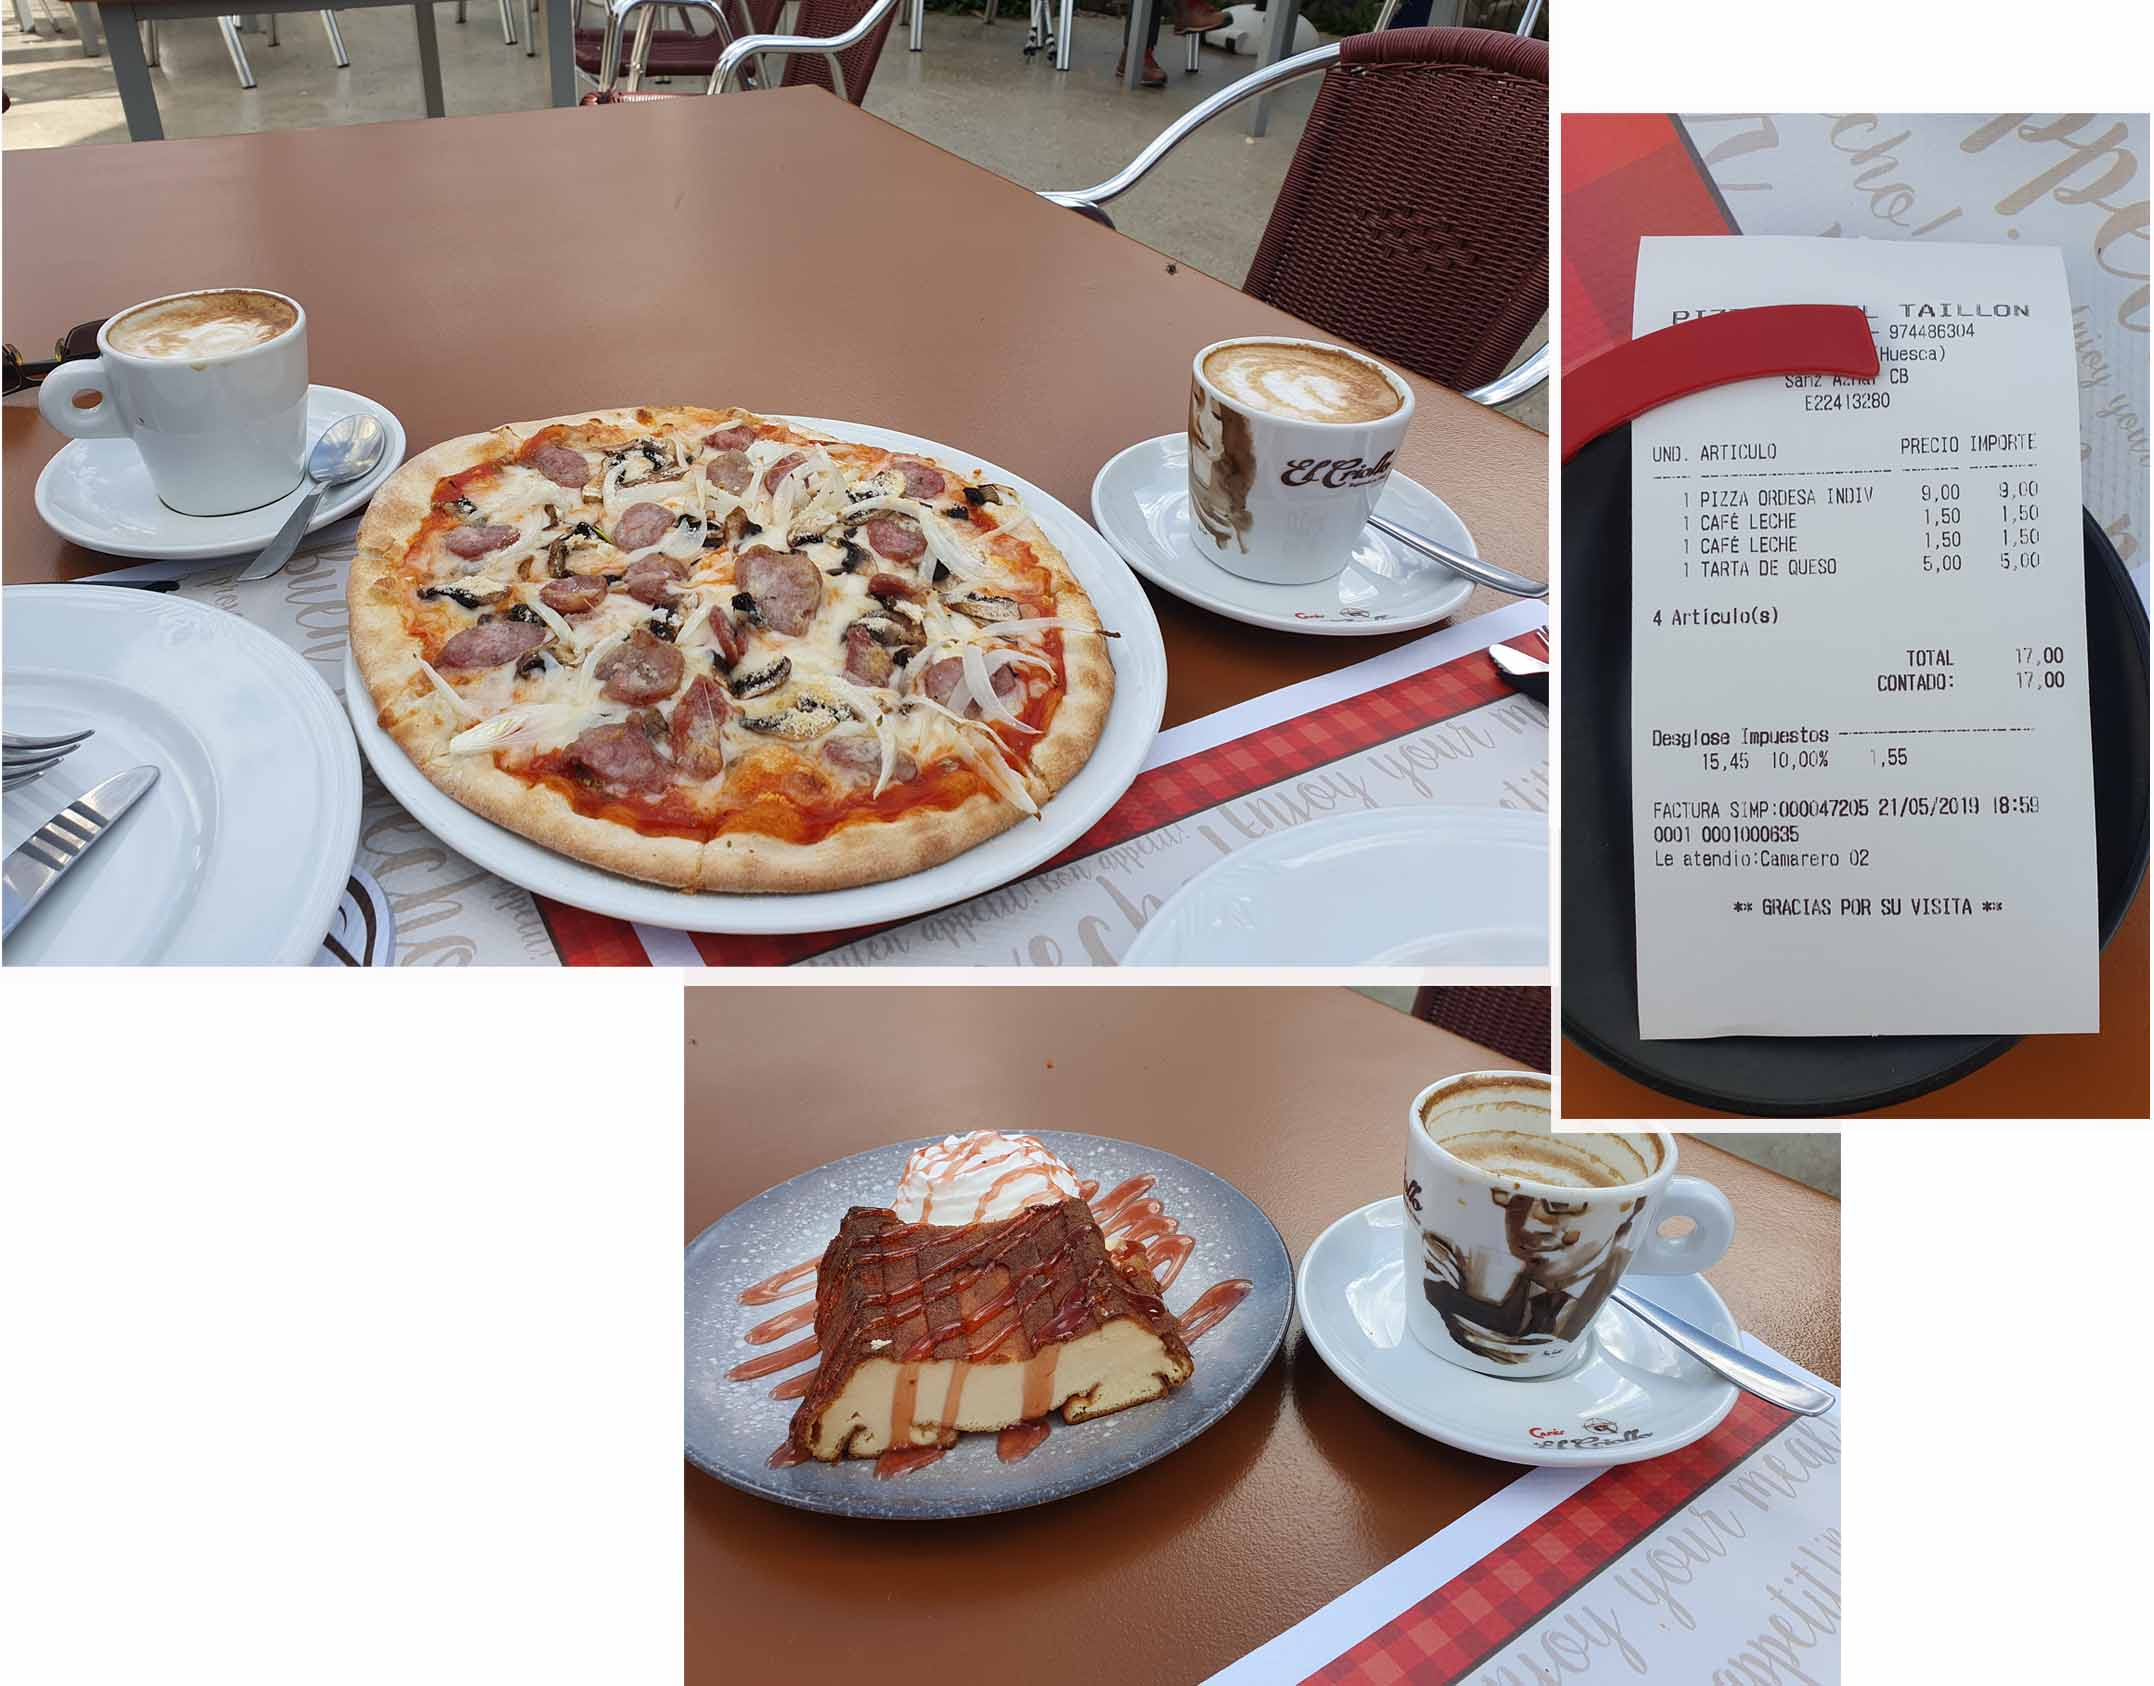 Pizza, cafe latte and desert